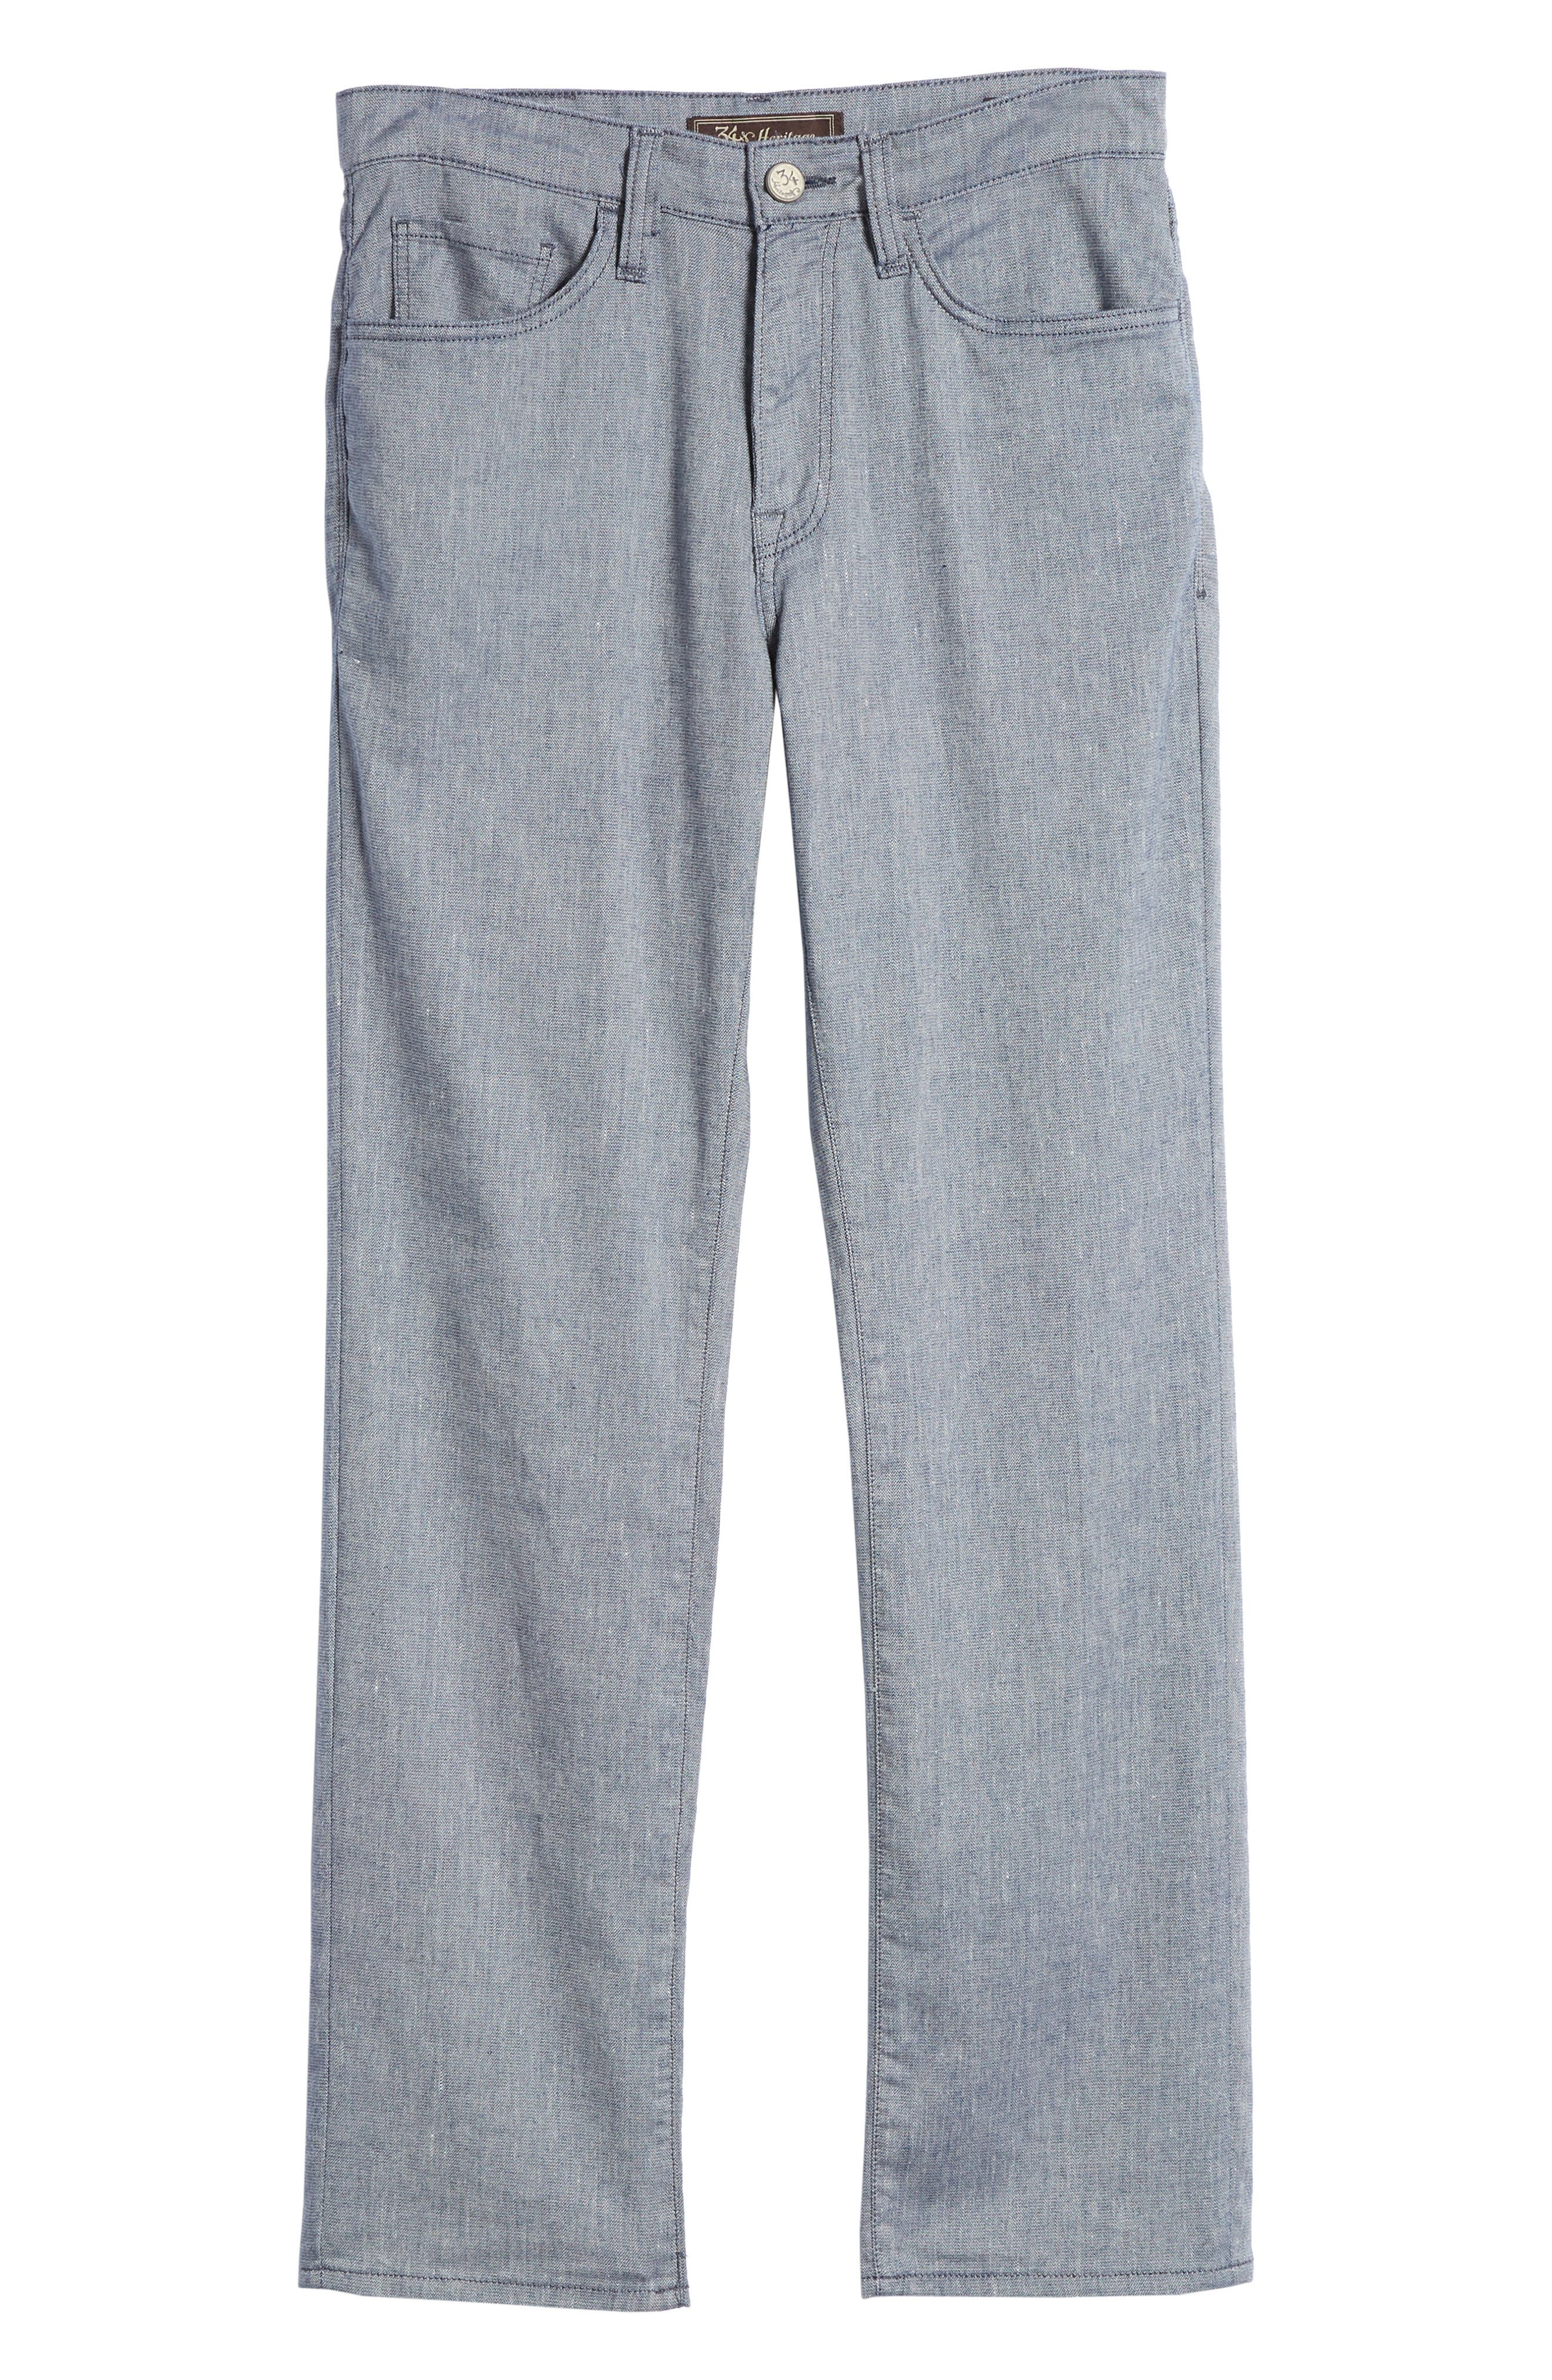 Charisma Relaxed Fit Pants,                             Alternate thumbnail 6, color,                             INDIGO TEXTURED